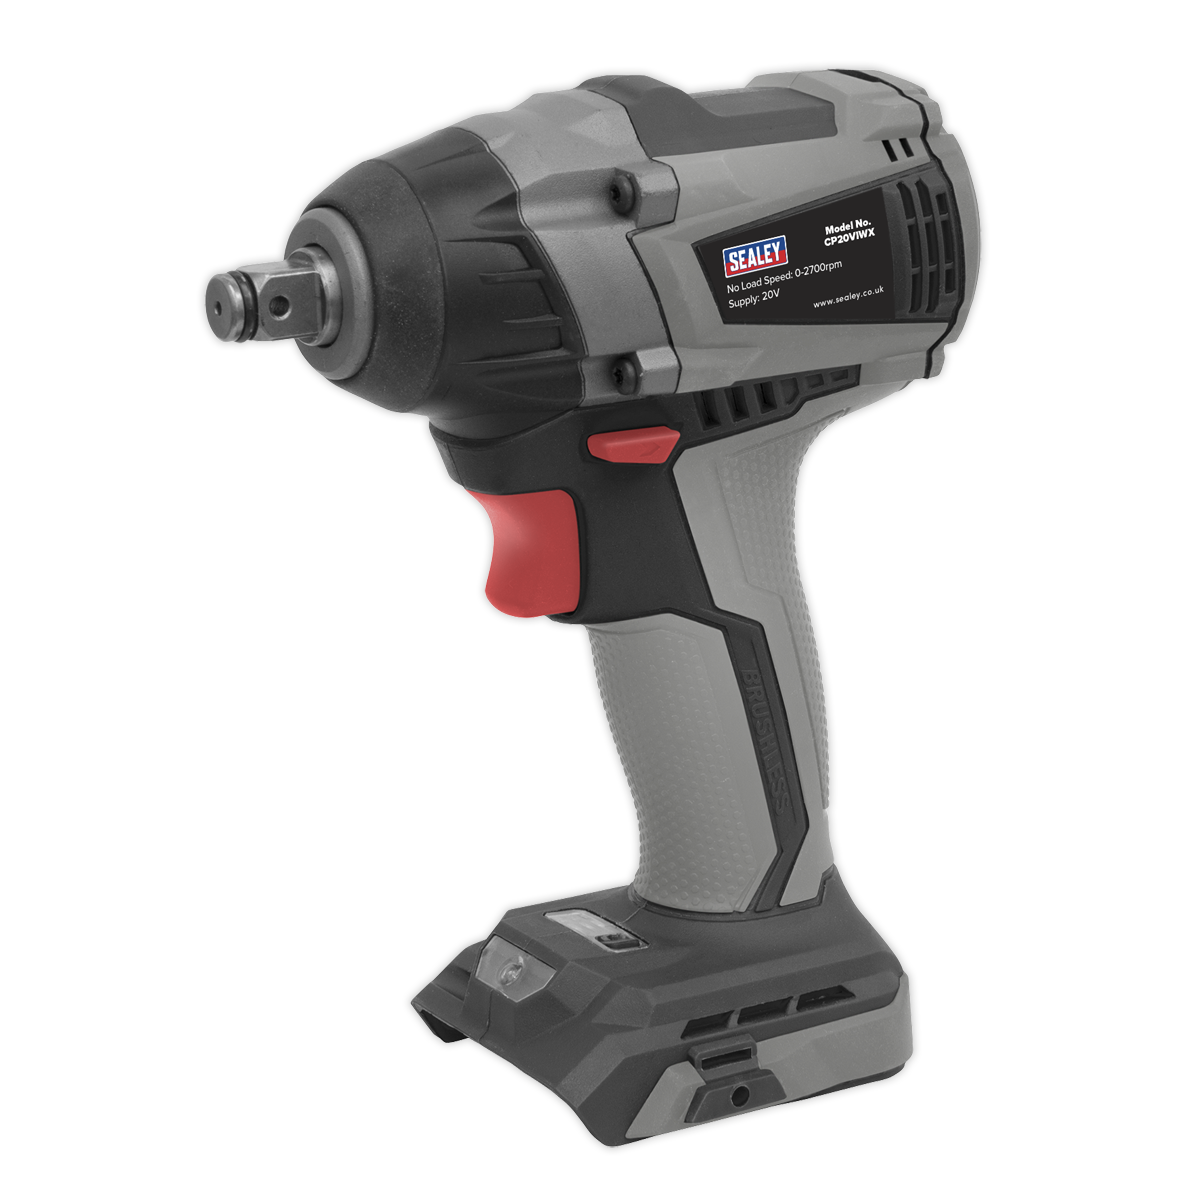 """Brushless Impact Wrench 20V 1/2""""Sq Drive 300Nm - Body Only"""